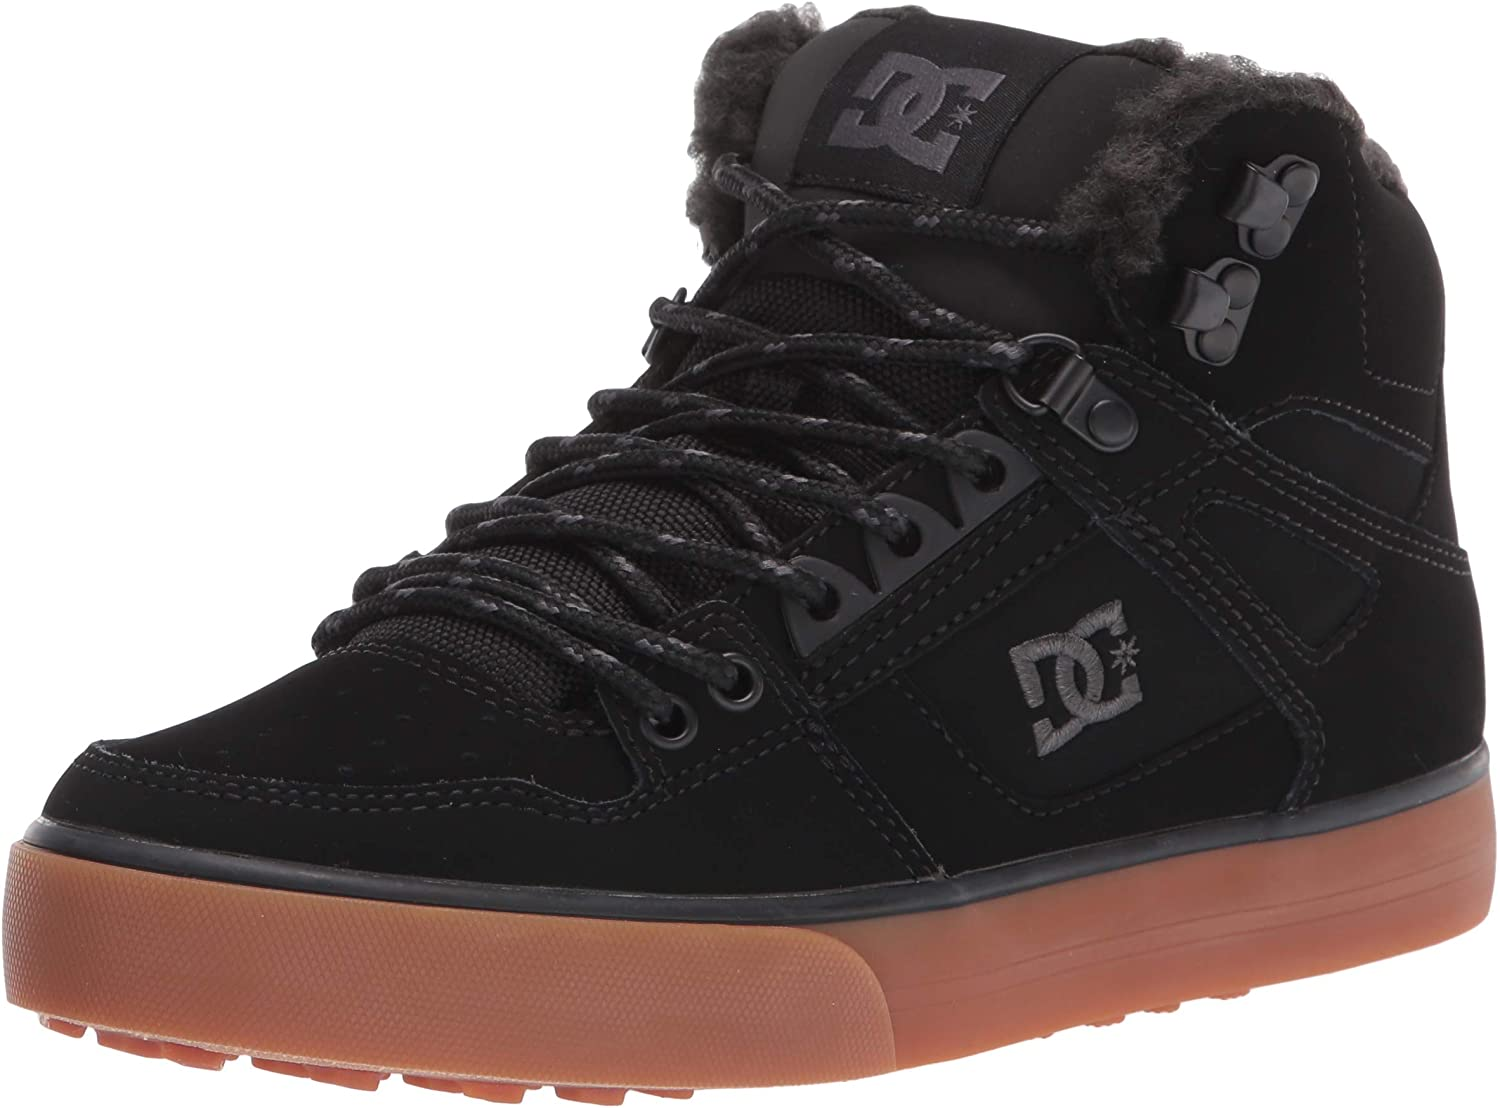 OFFer DC Men's Pure High-top Wc Skate Shoe Skateboard Selling rankings Wnt